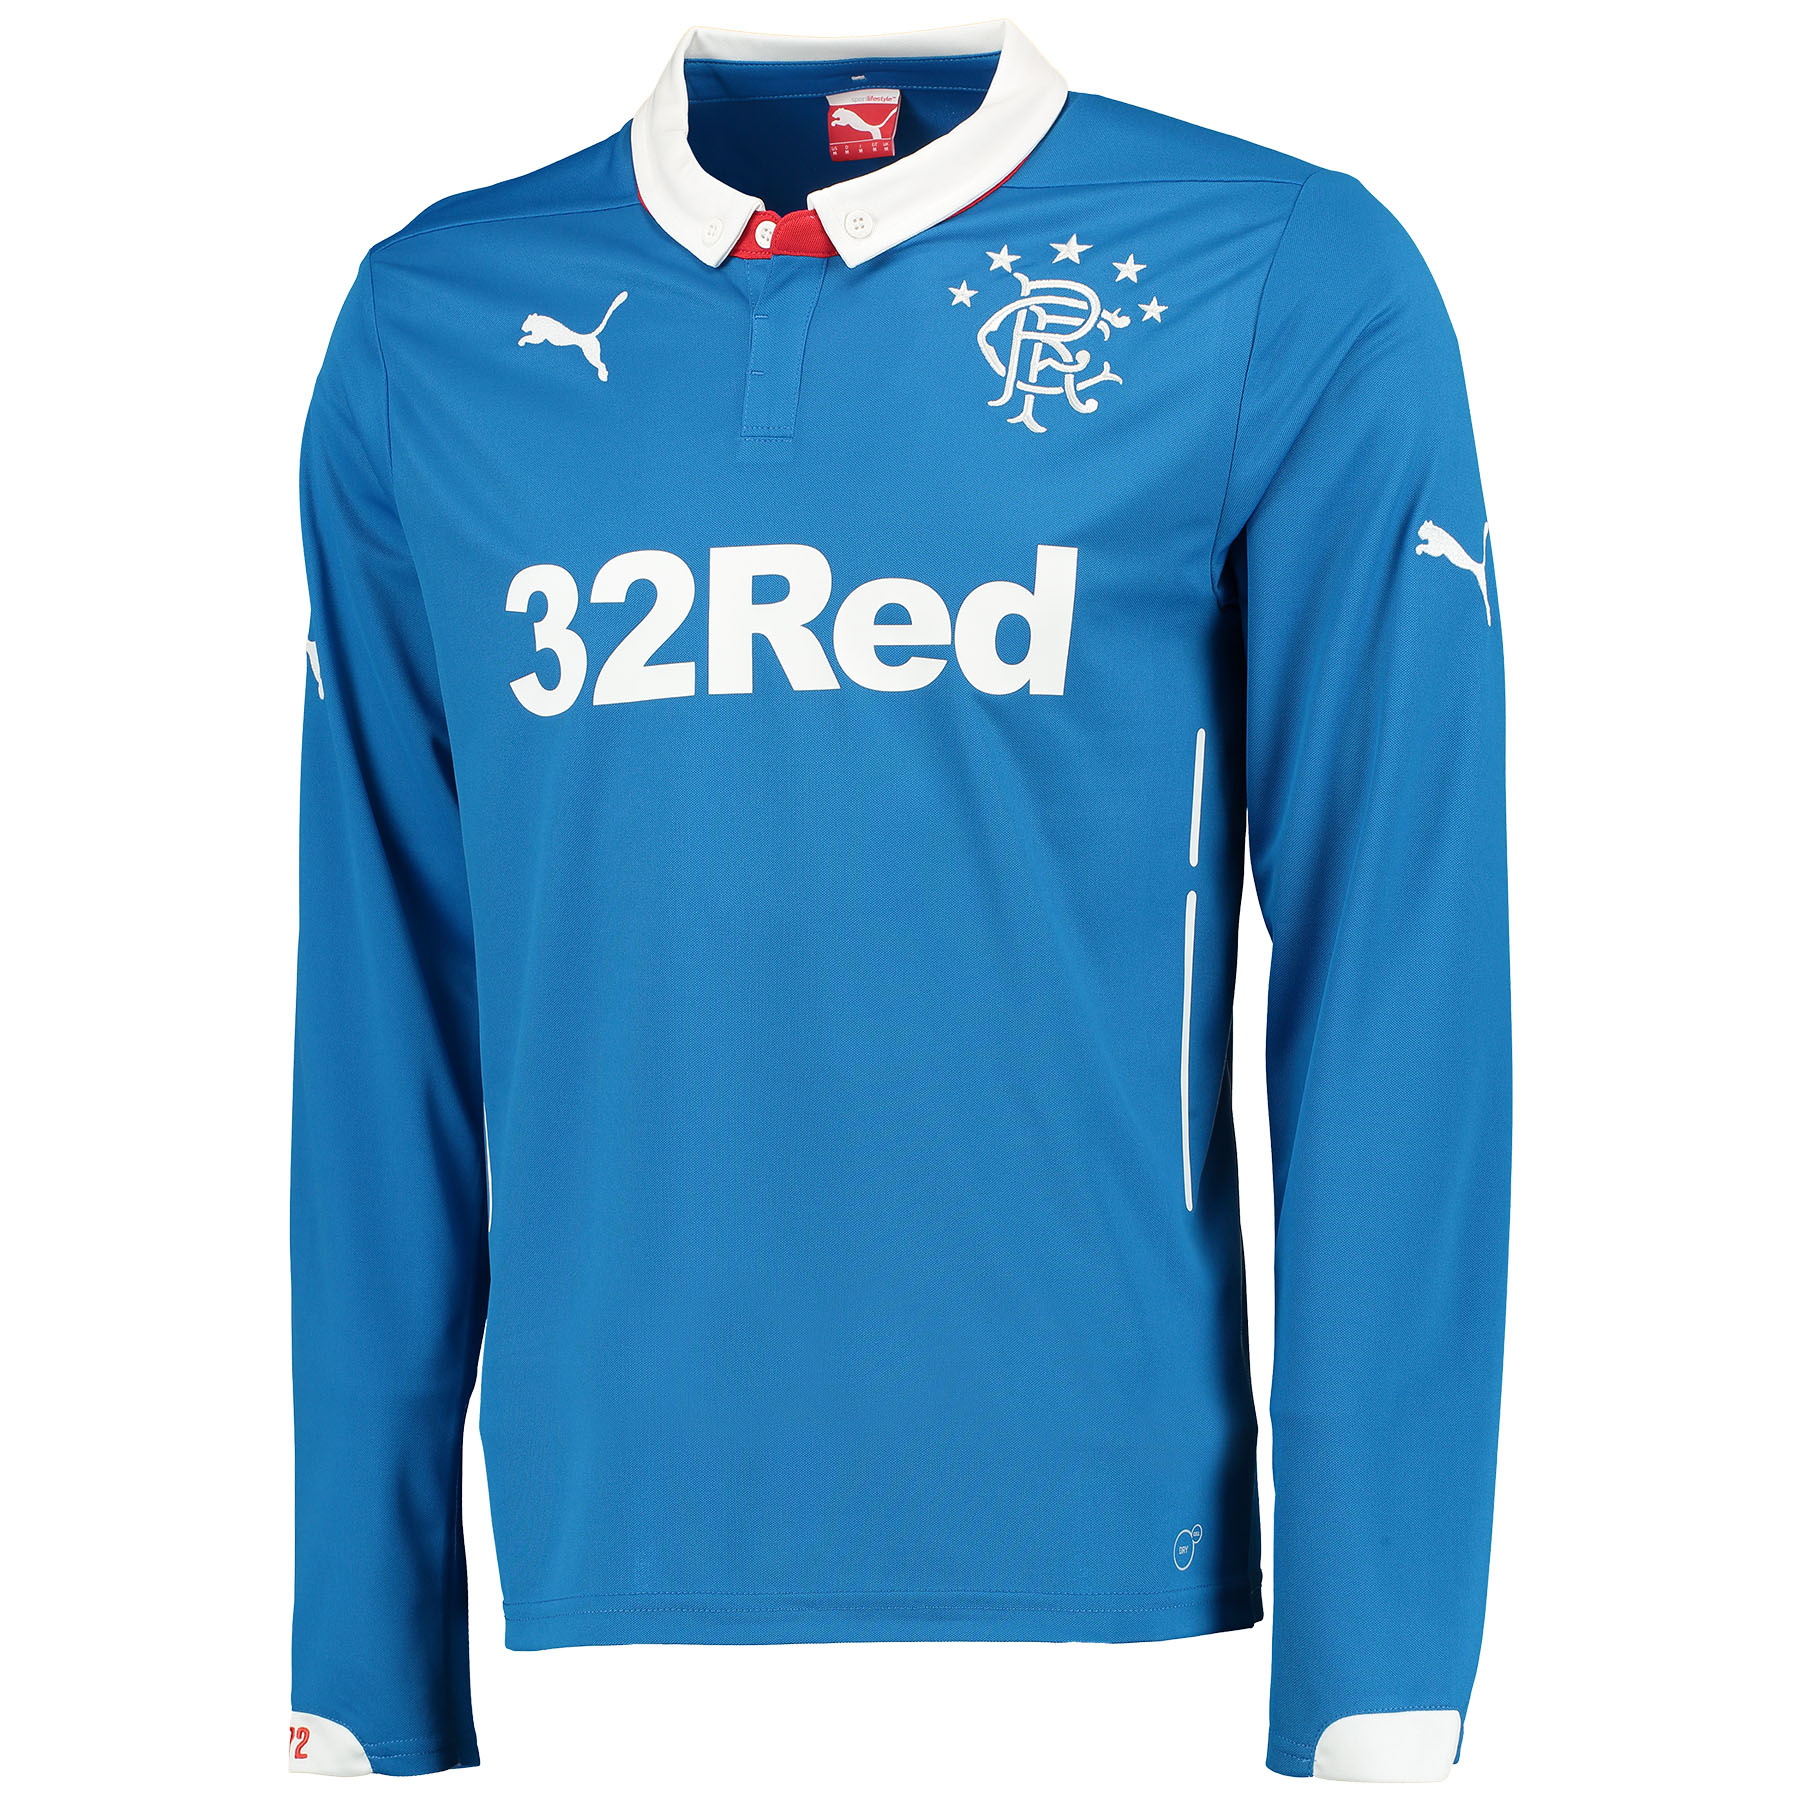 Glasgow Rangers Home Shirt 2014/15 Long Sleeve